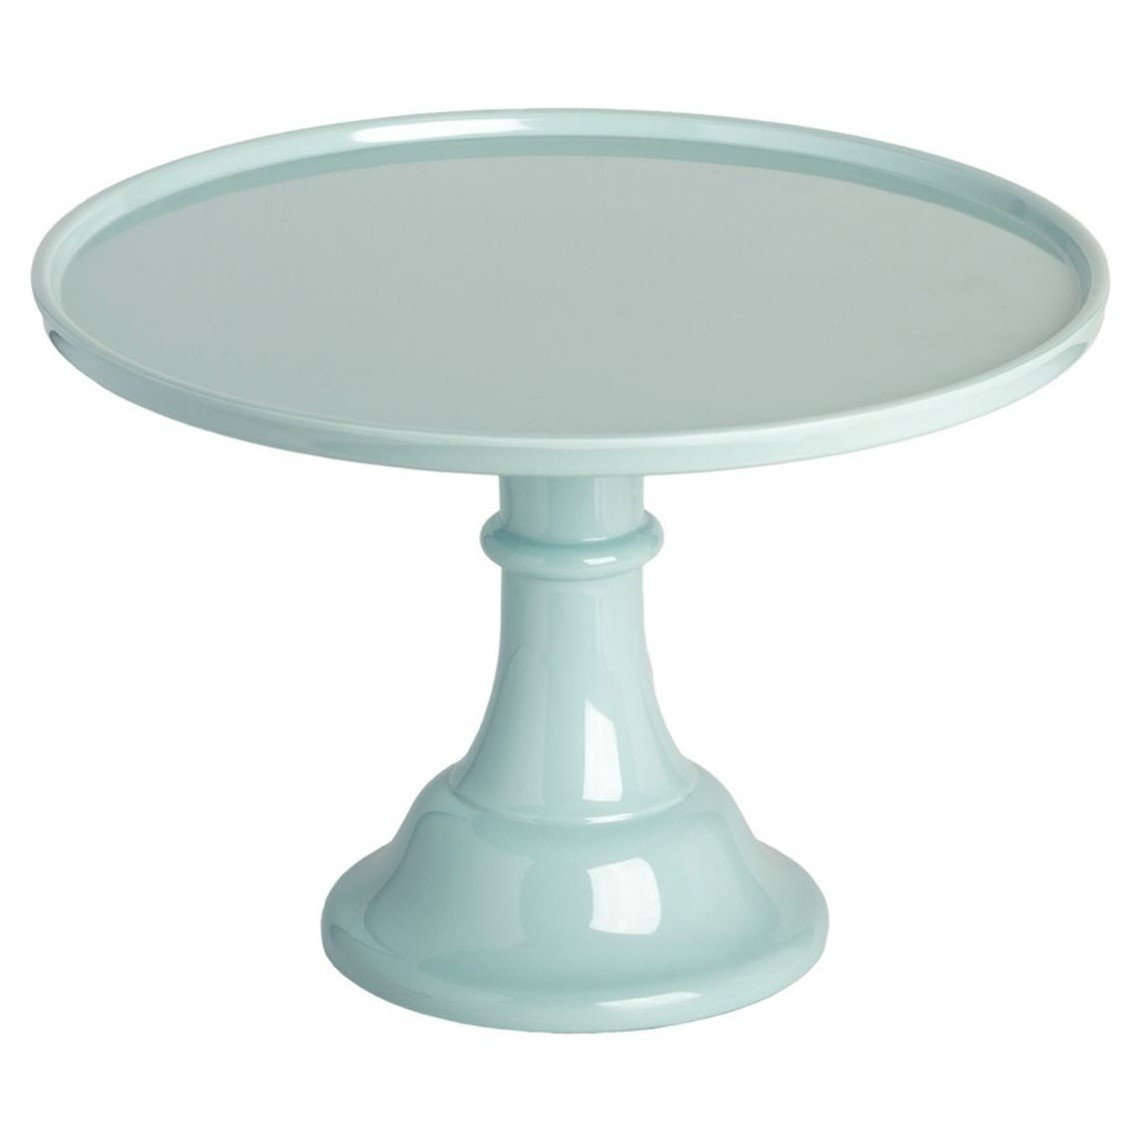 A Little Lovely Company - Large Cake Stand in Vintage Blue